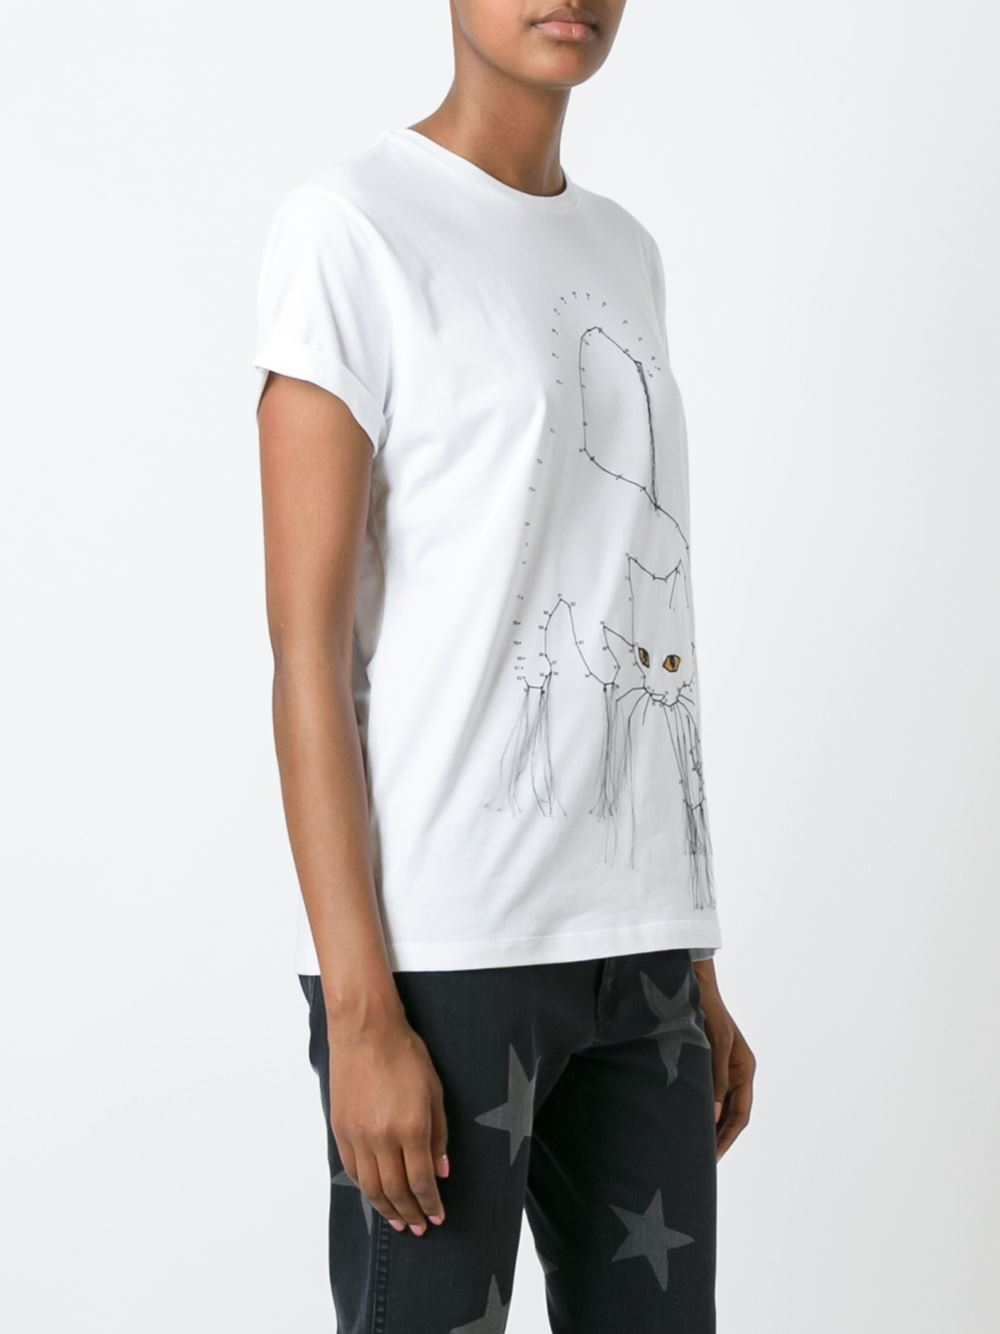 Stella mccartney embroidered cat t shirt in black lyst for Stella mccartney t shirt